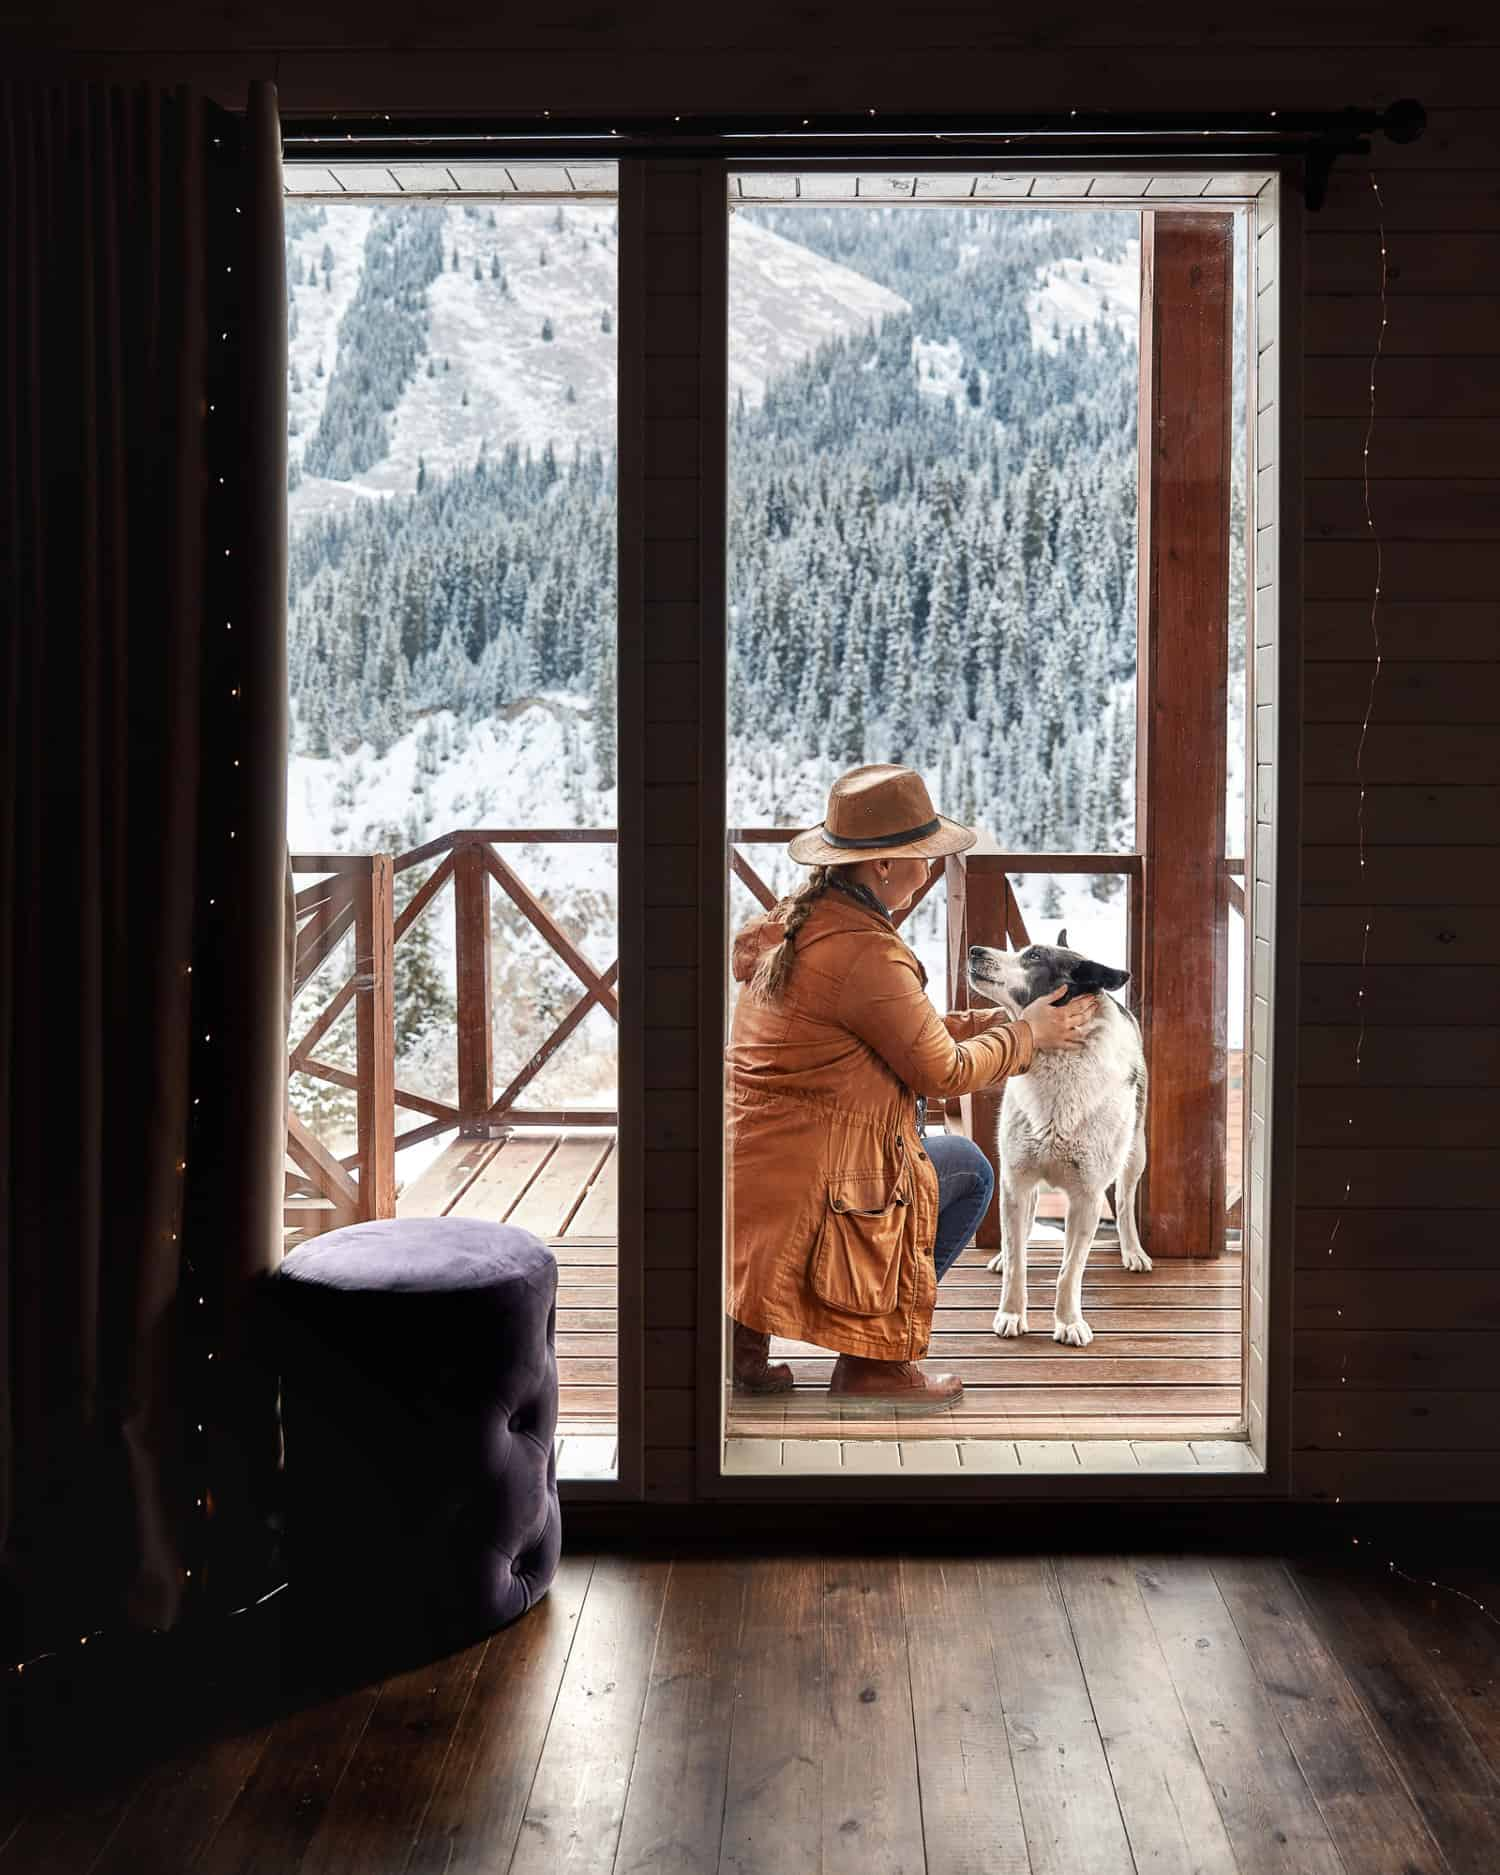 A woman in a hat plays with her dog on the deck of a winter holiday pet property